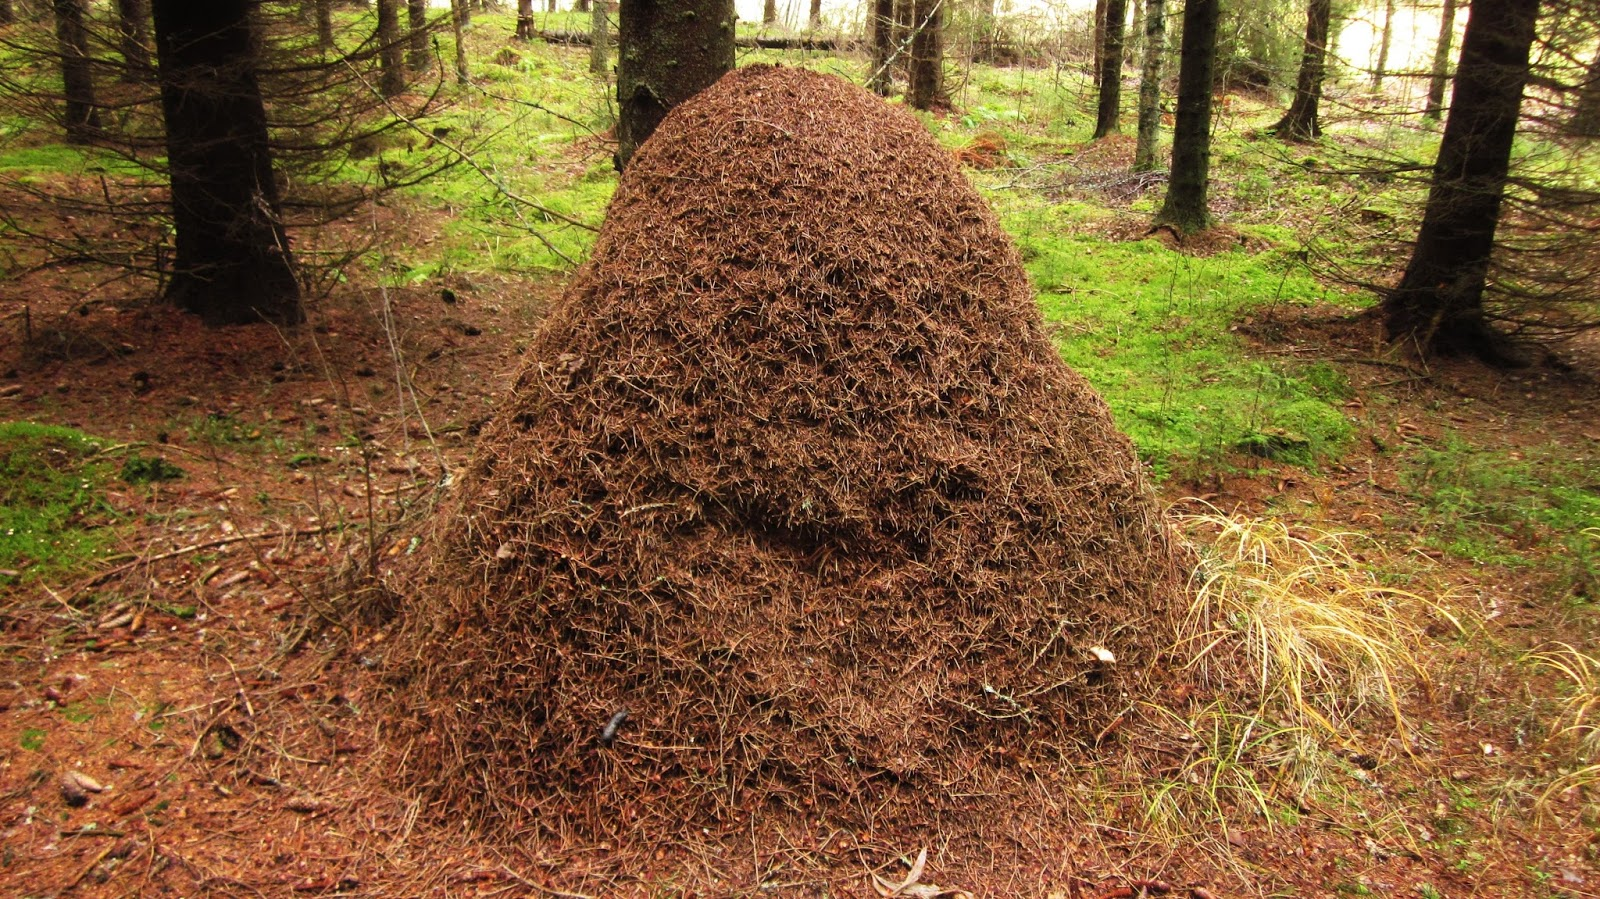 Picture of an anthill in the forest.